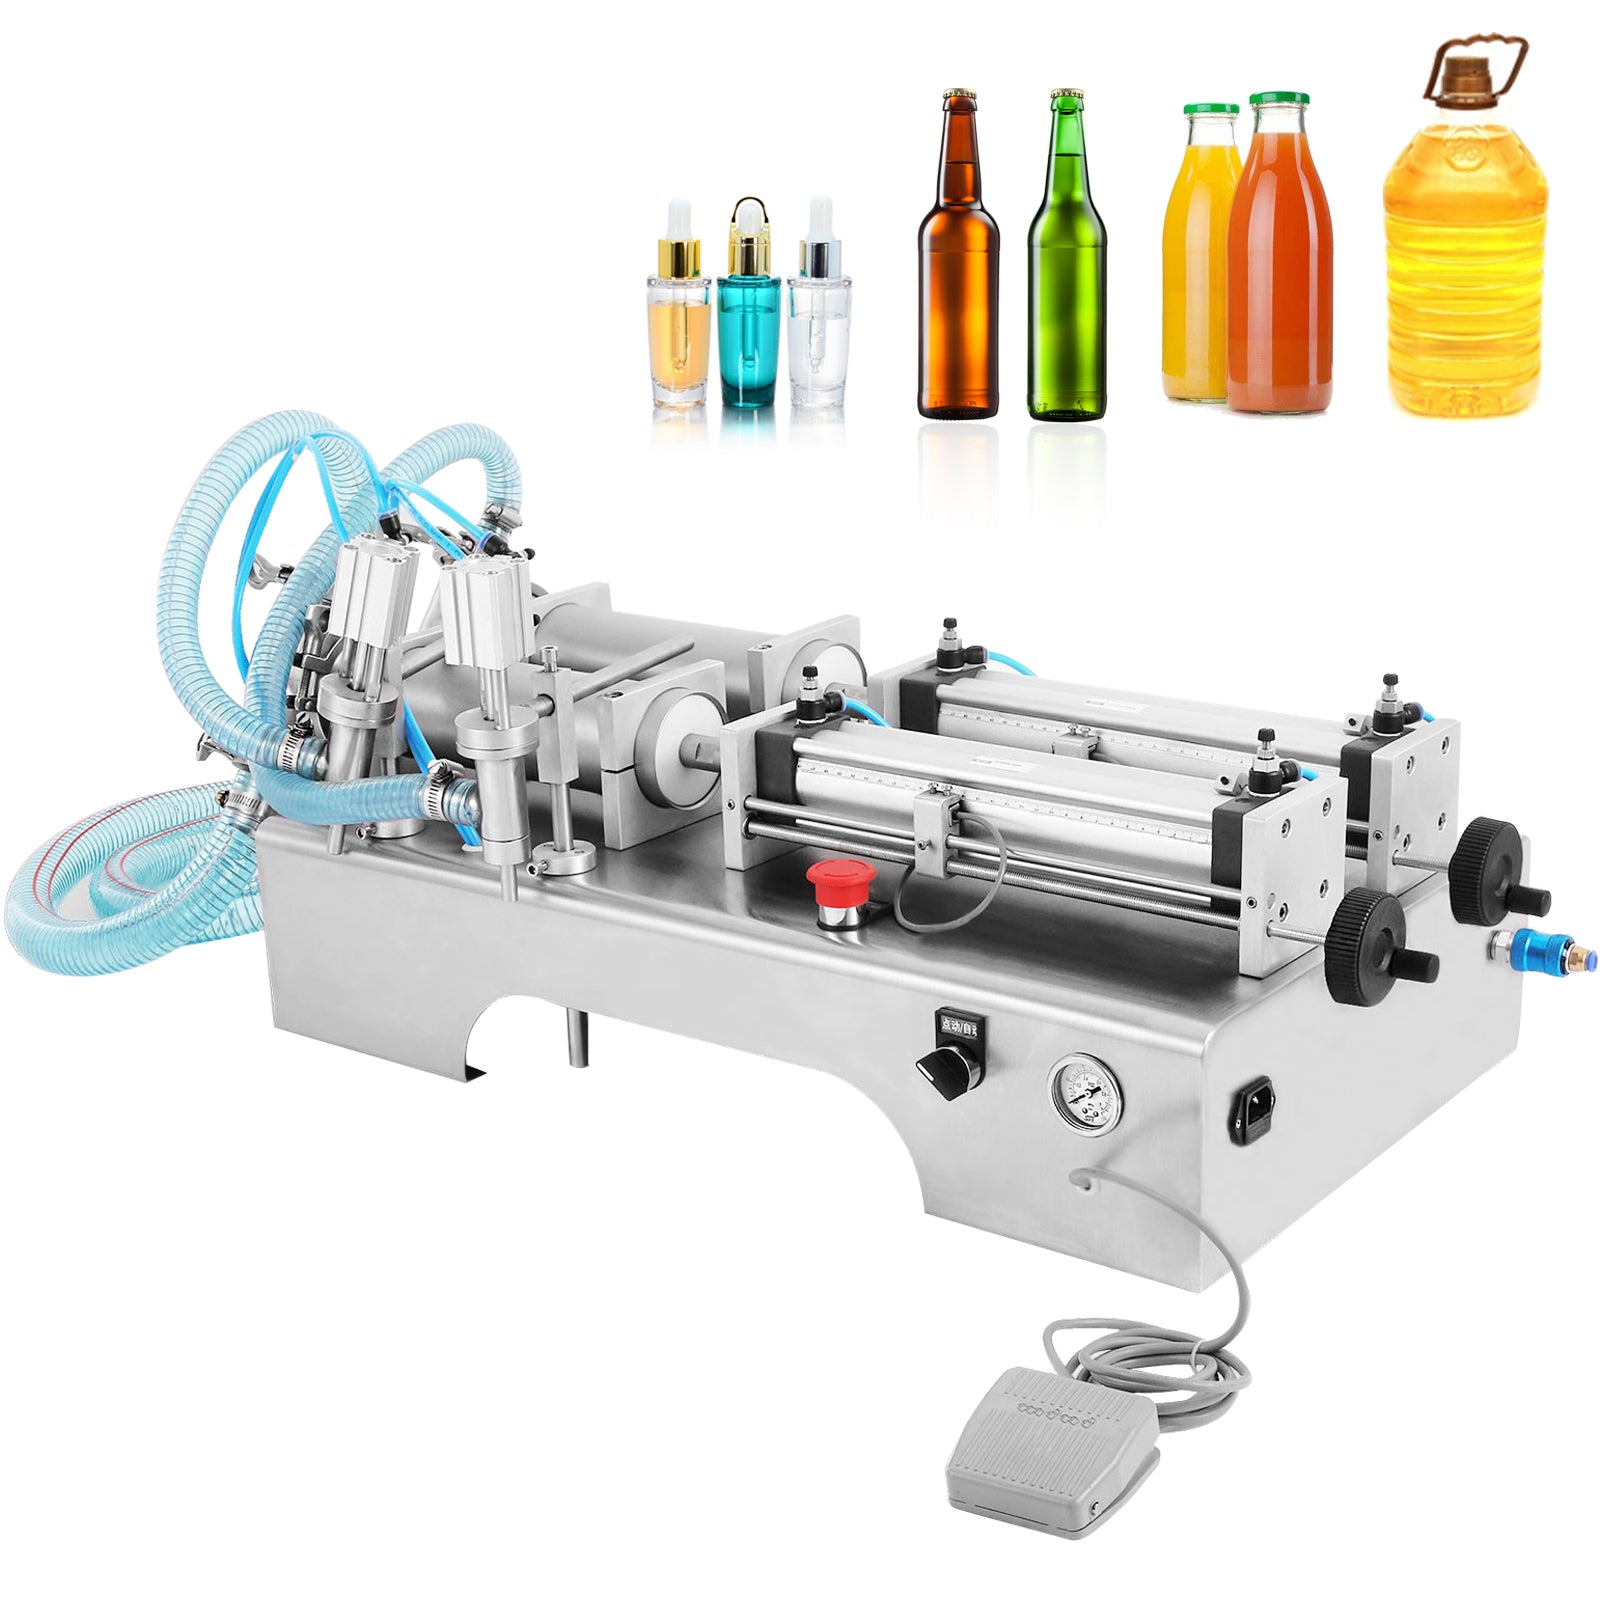 Two Heads Pneumatic Liquid Filling Machine 100-1000ml 0.4-0.6mpa Water Stainless